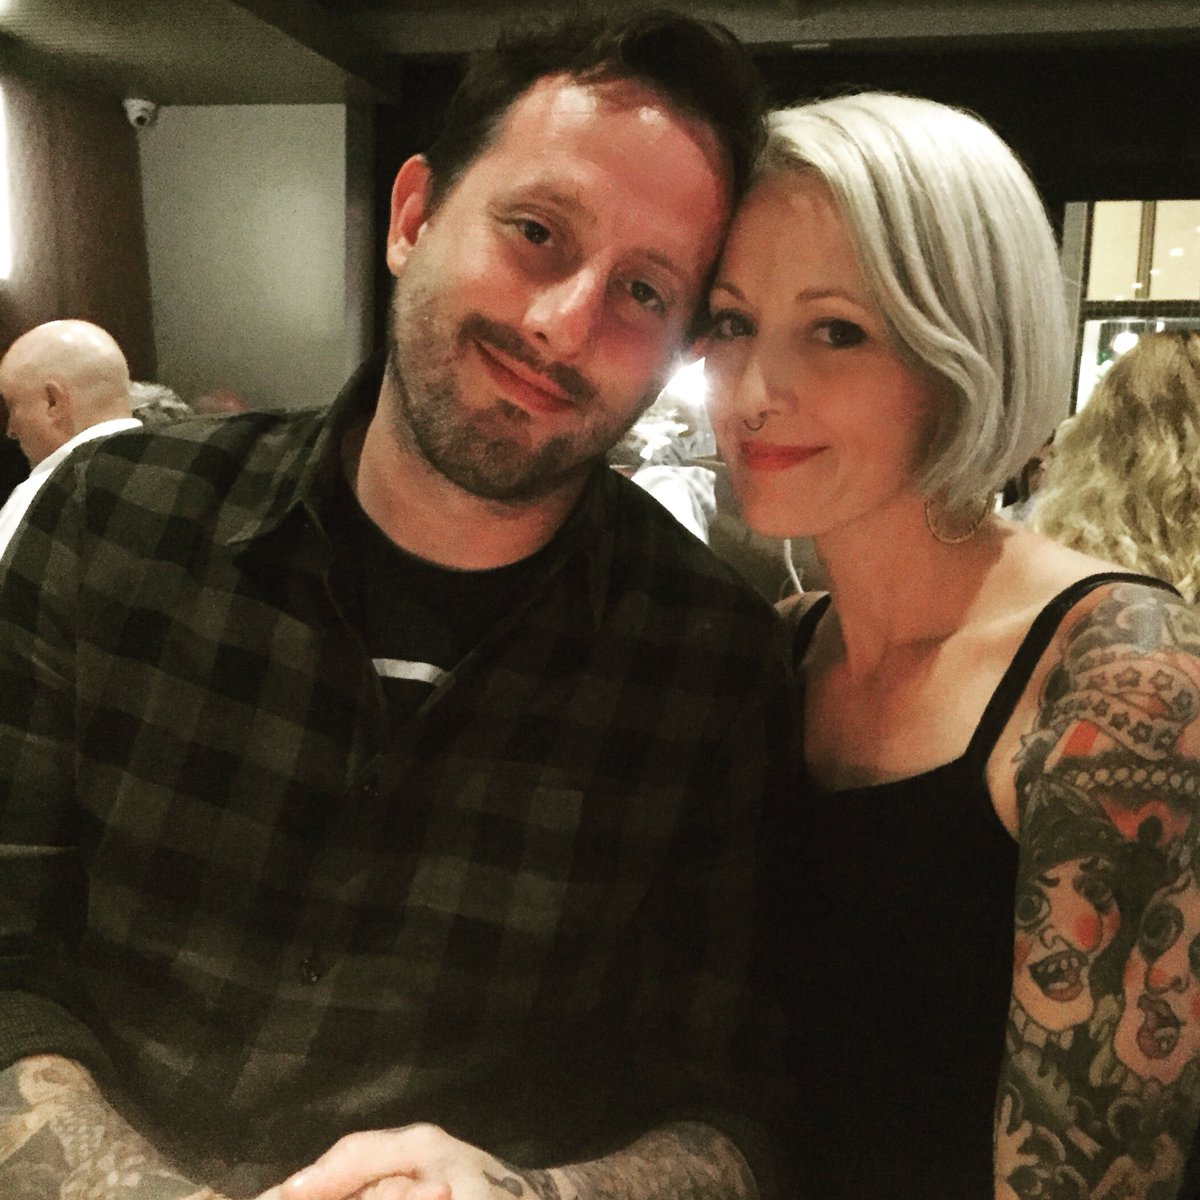 Married eleven years today! Happy anniversary to my very best friend, @geofflramsey. ❤️ https://t.co/wxkepuOJVJ